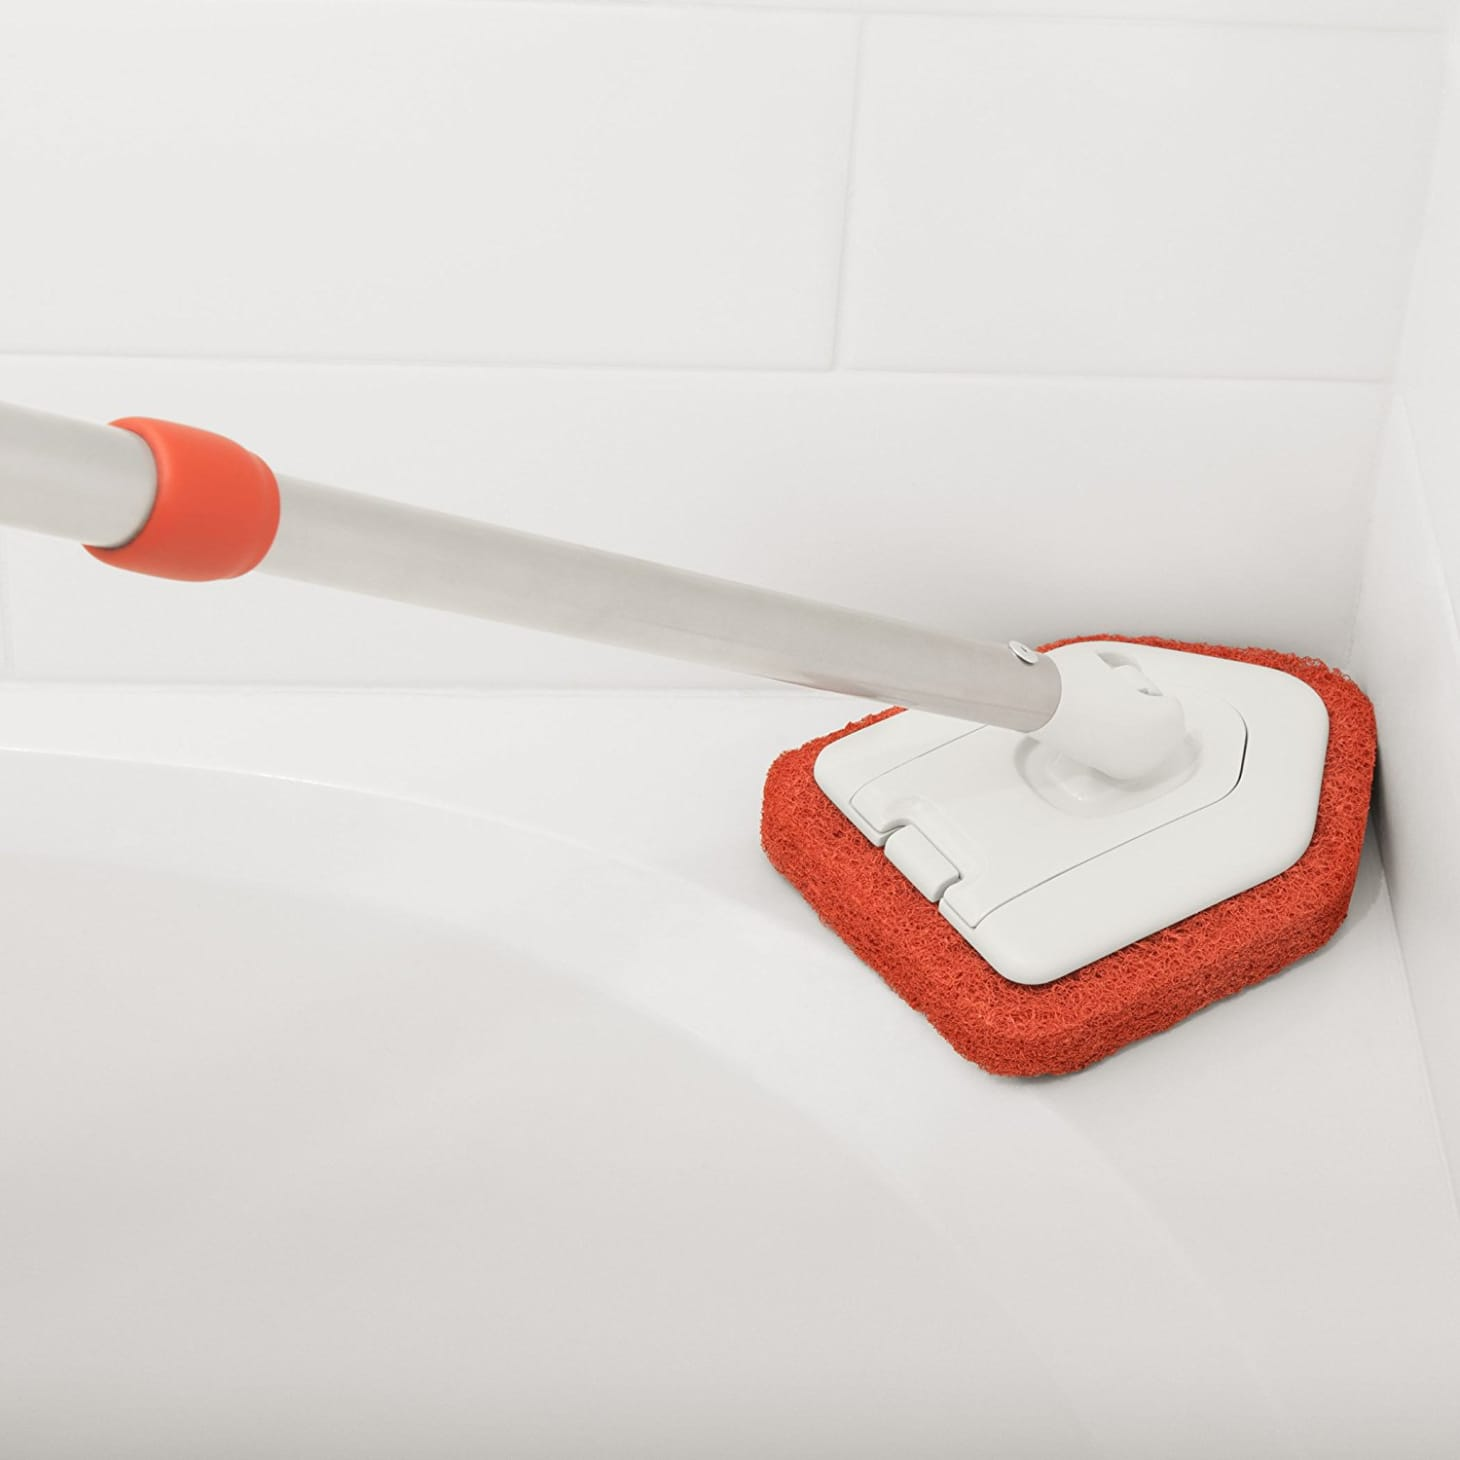 Oxo Extendable Tub Cleaner Solves All Your Problems